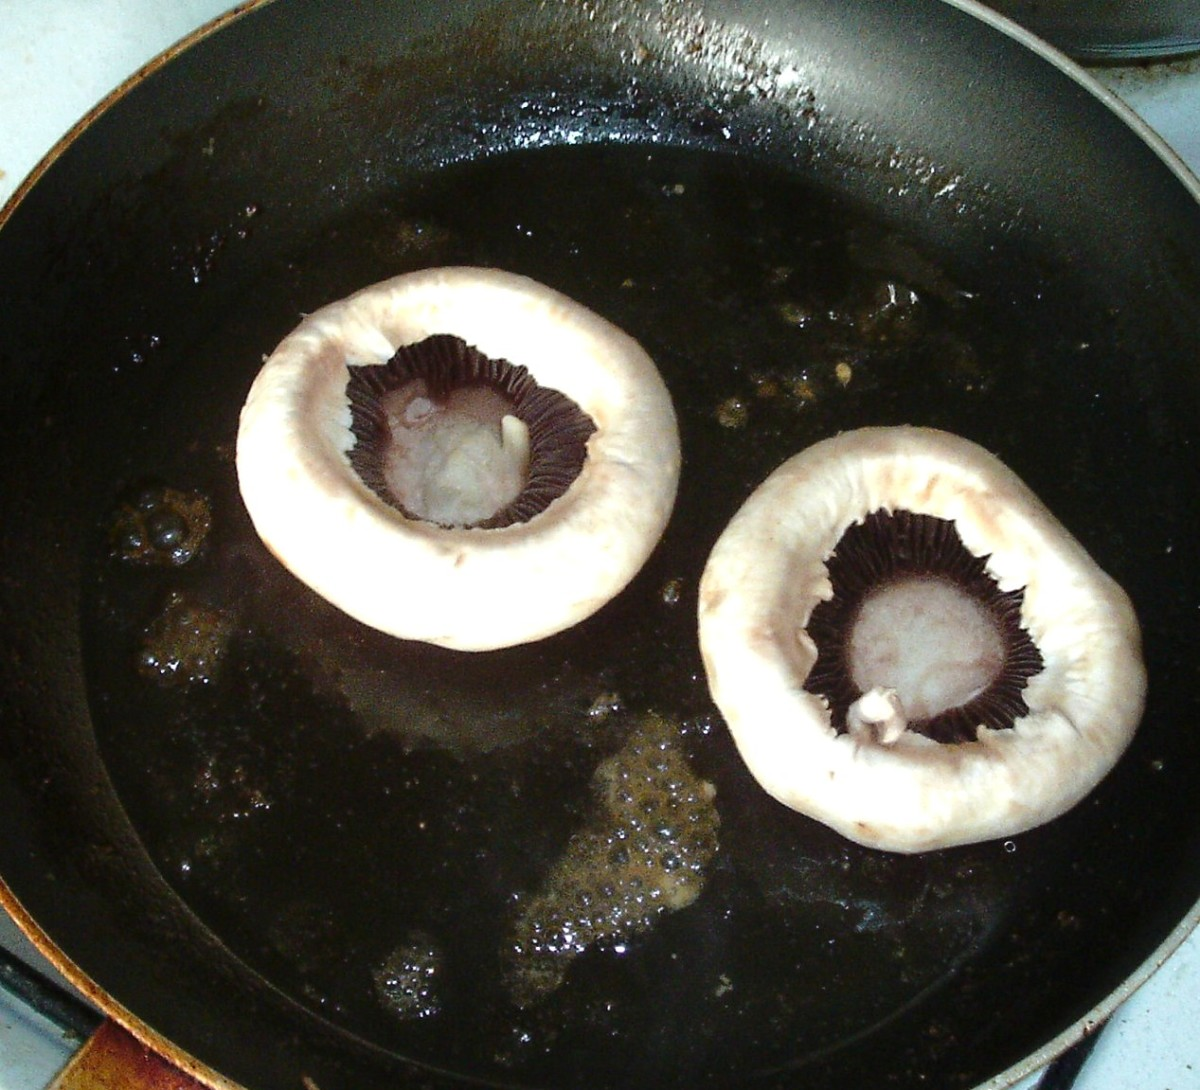 Mushroom cups are added to frying pan